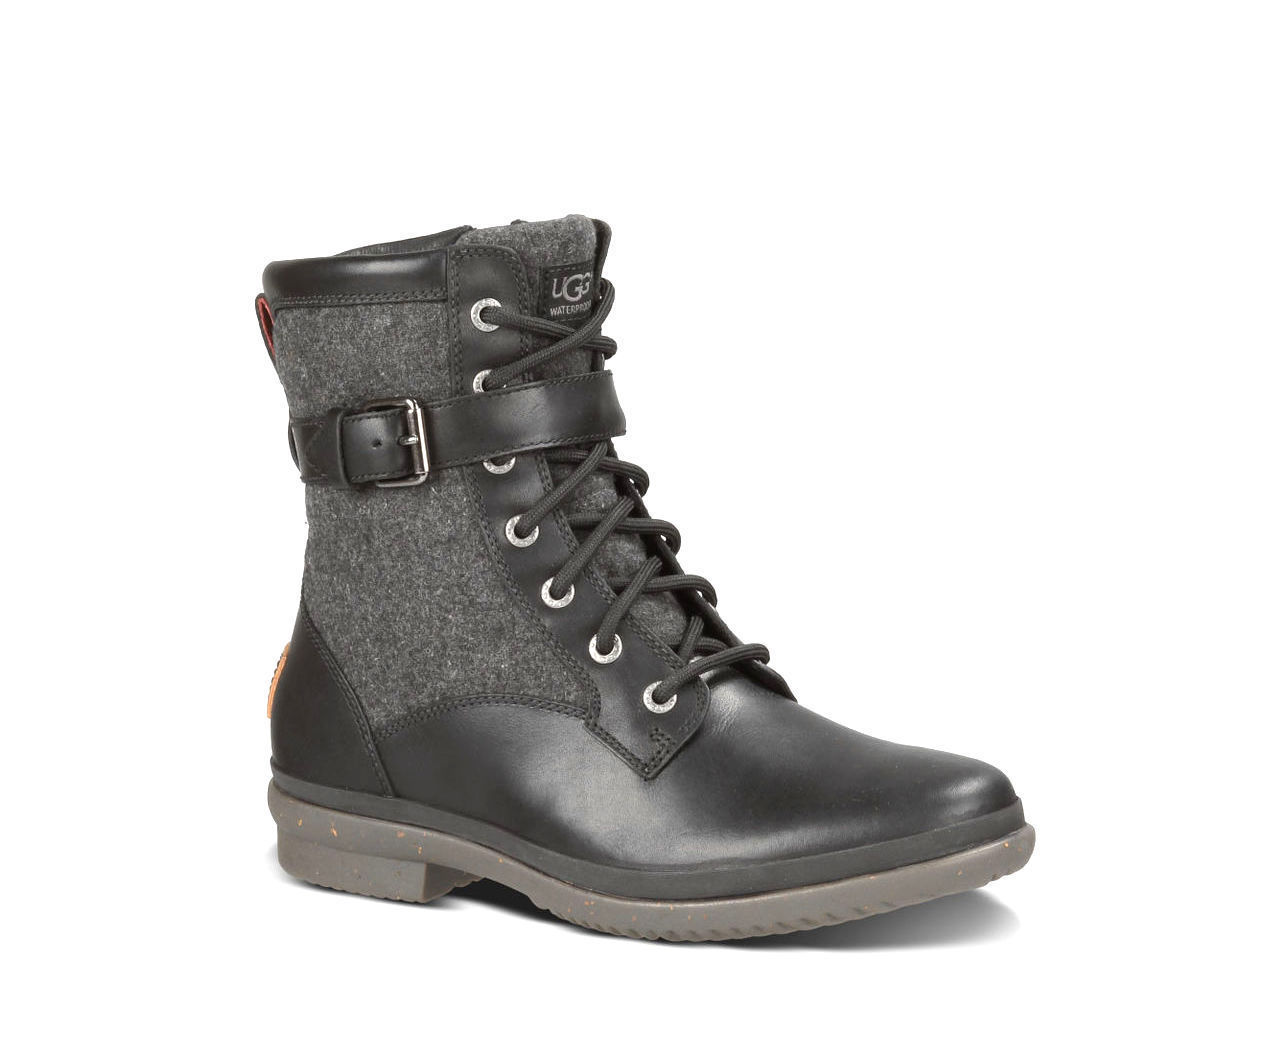 Womens Cold Weather Boots Waterproof With Awesome Styles